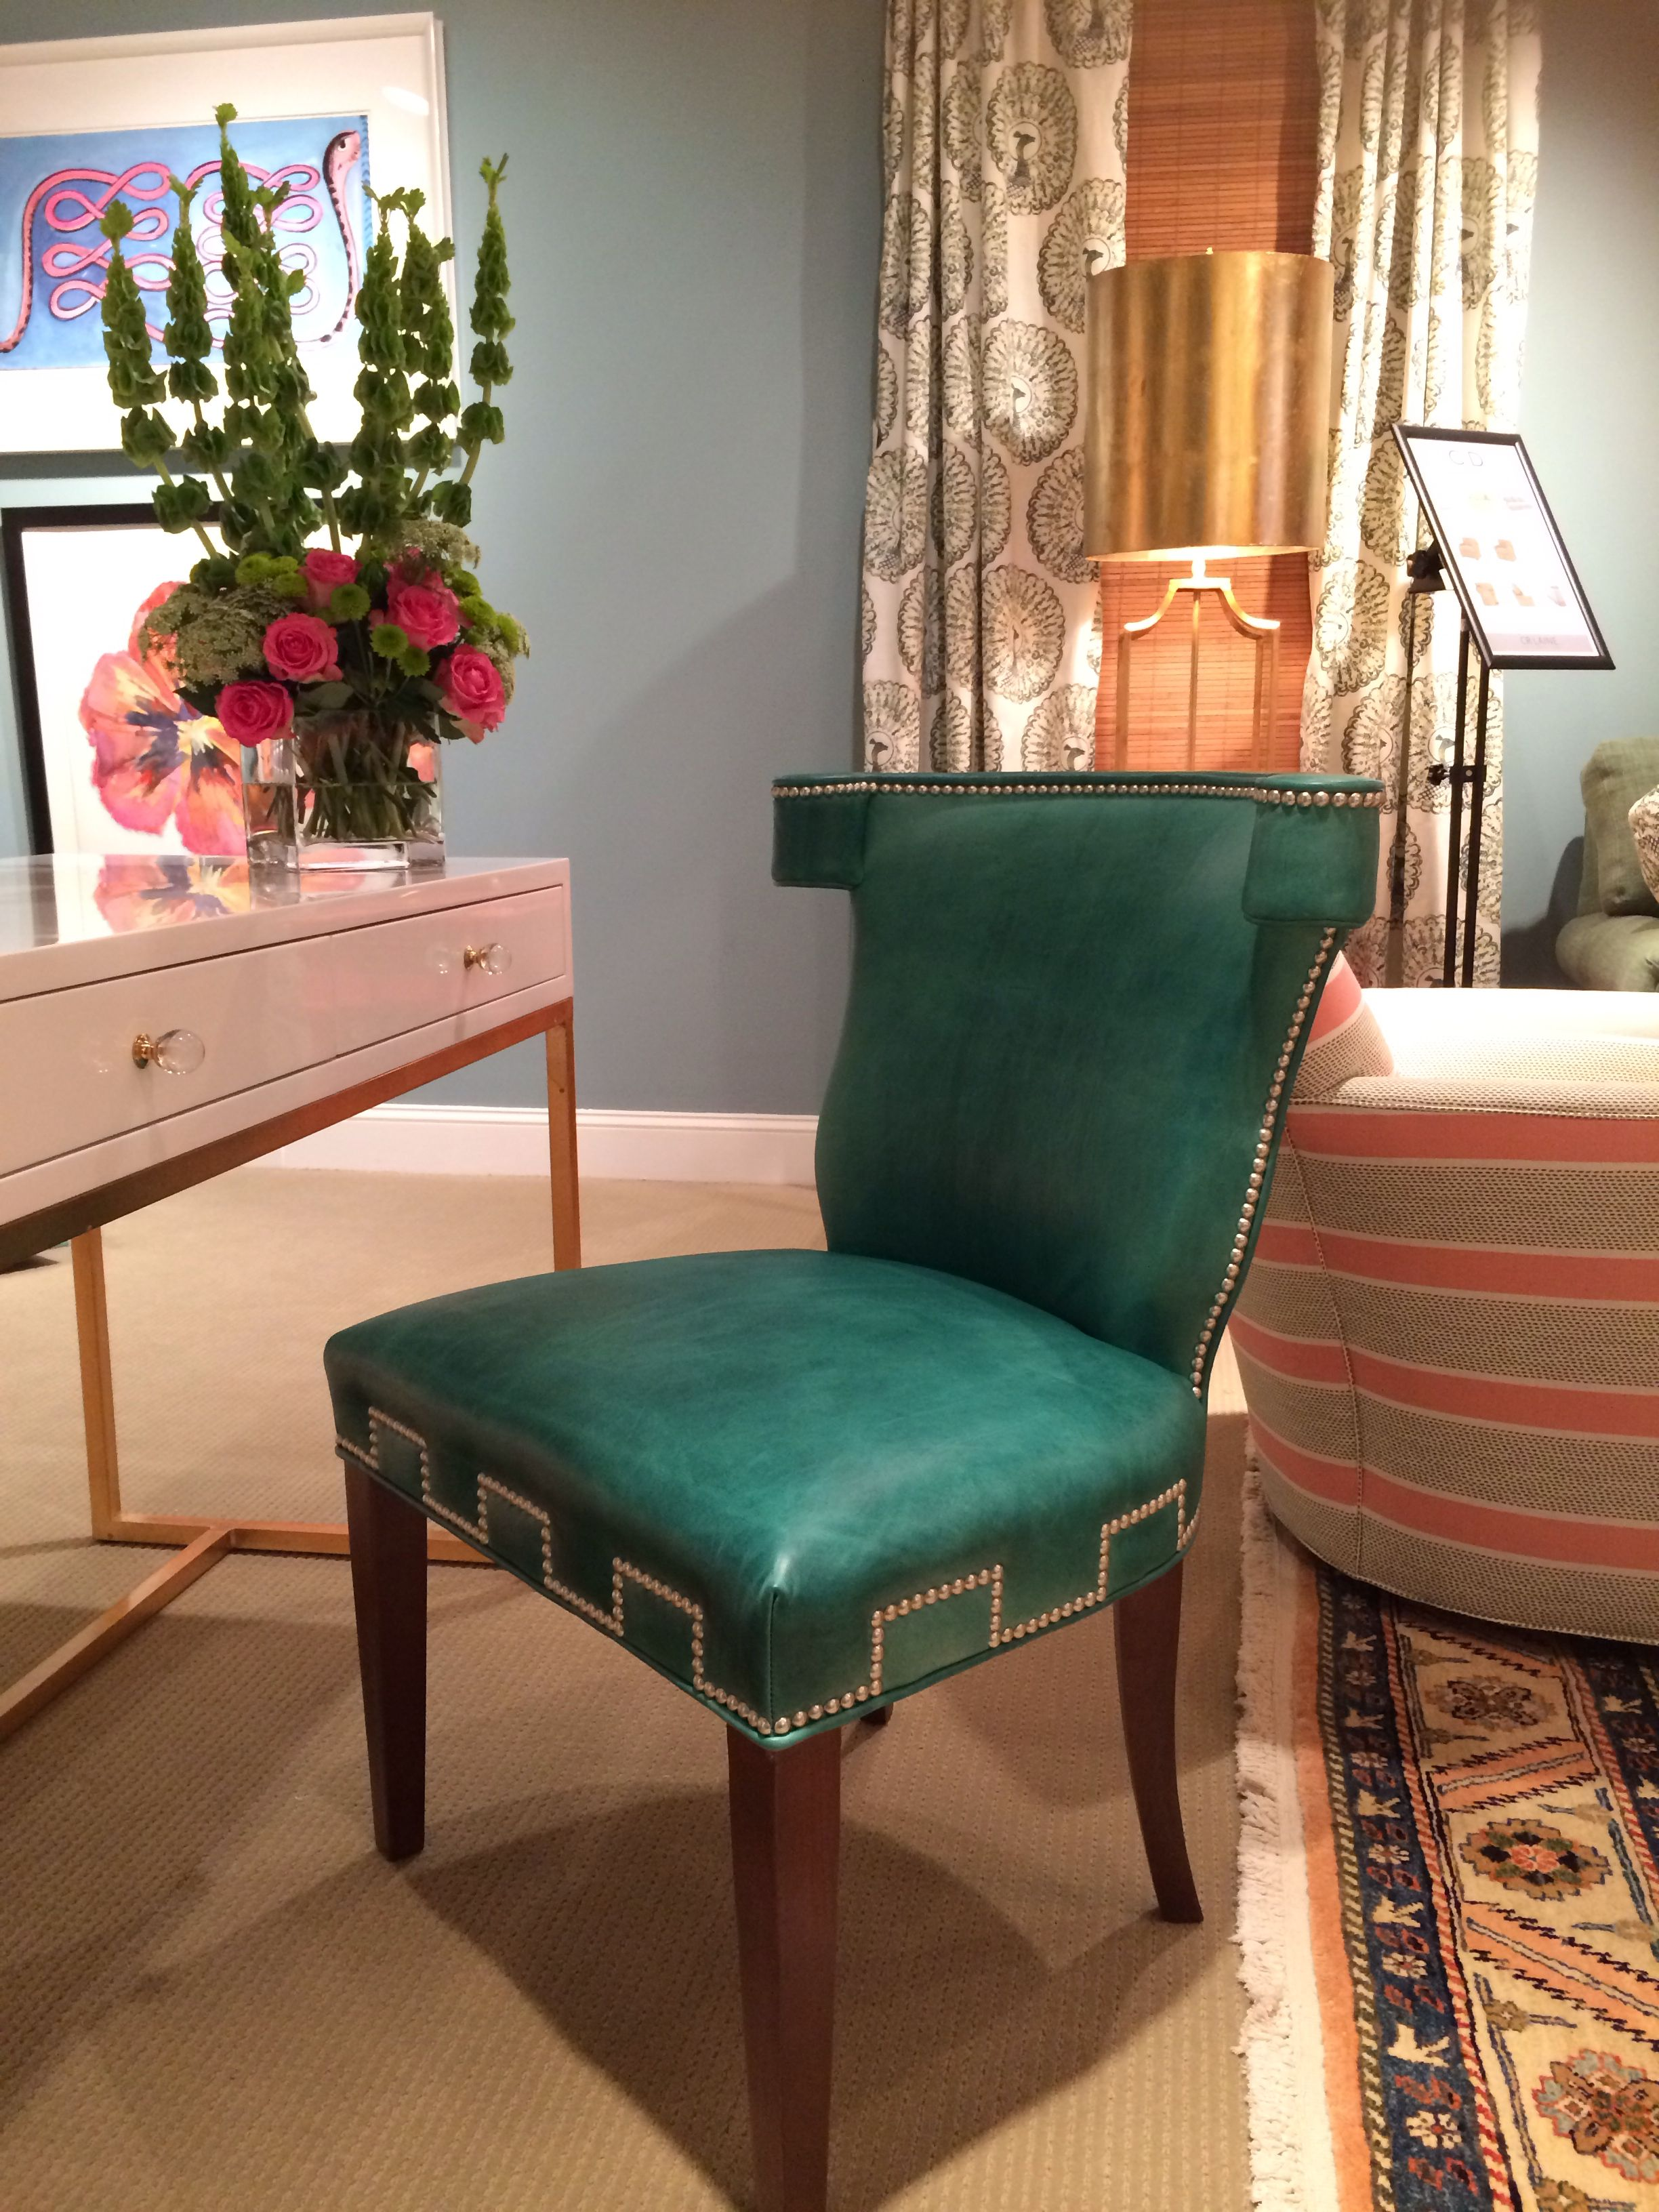 Cr laine sweeney chair in emerald green leather with